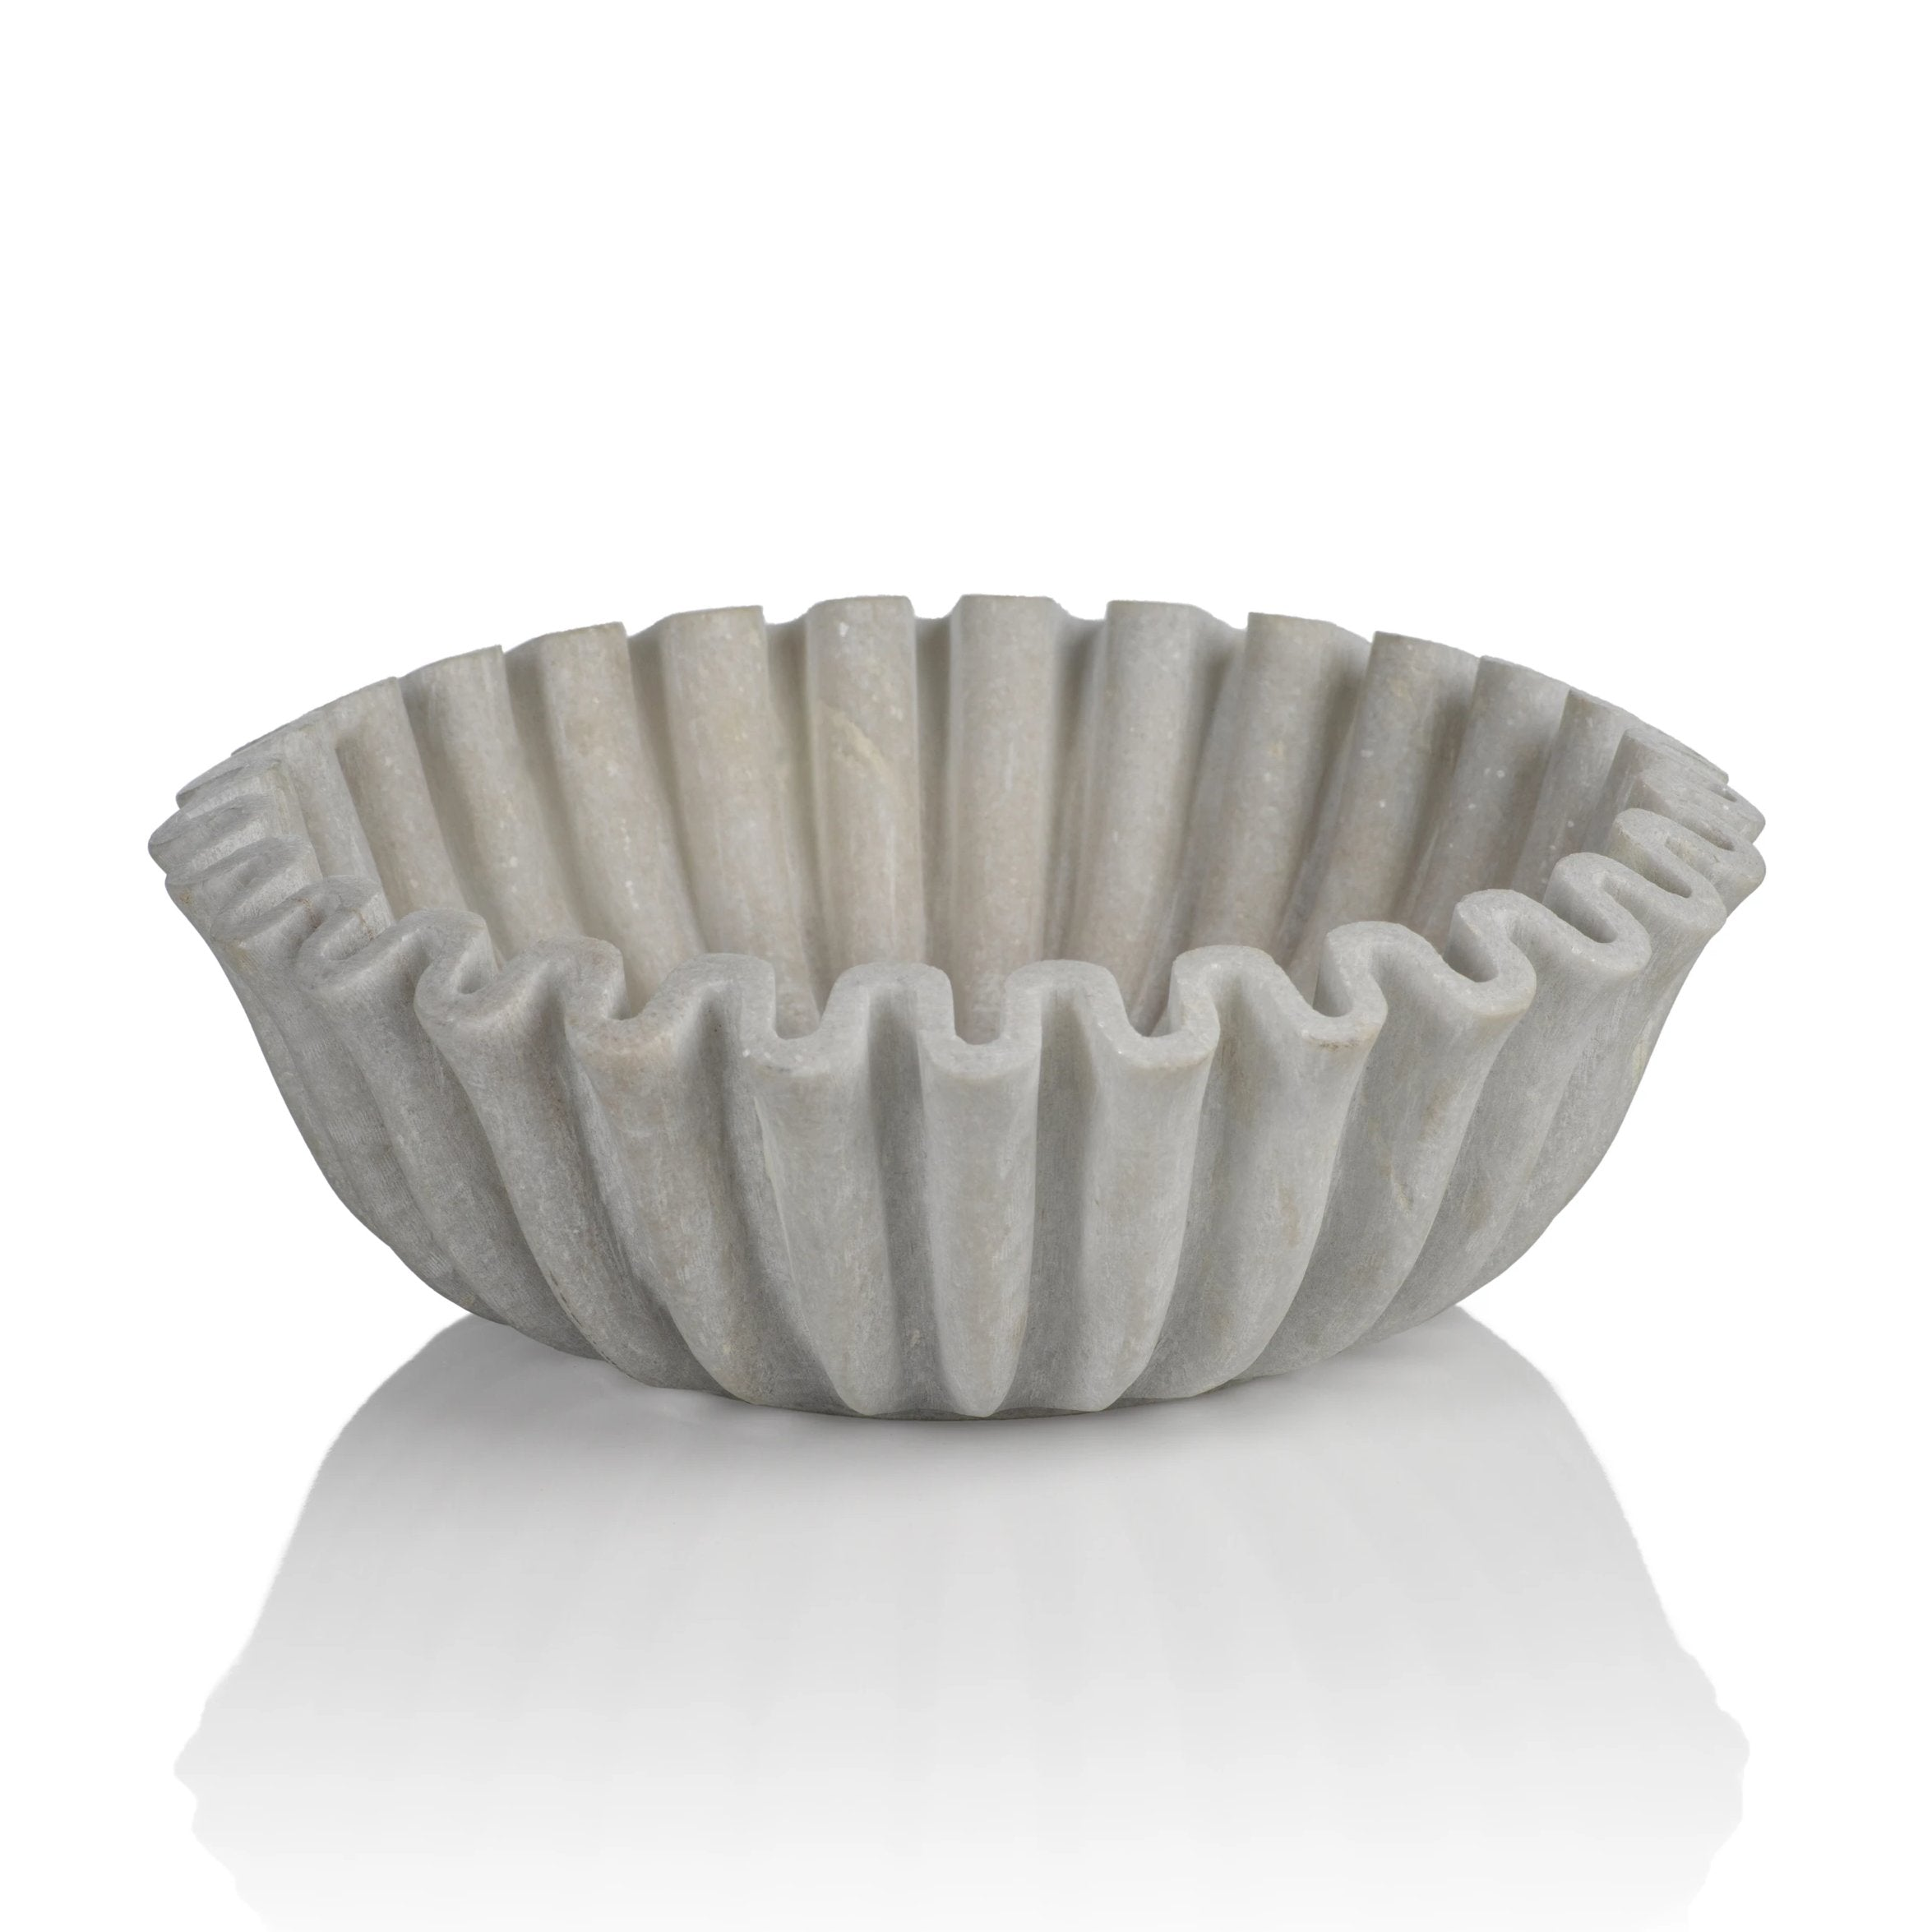 Scalloped Marble Bowl - CARLYLE AVENUE